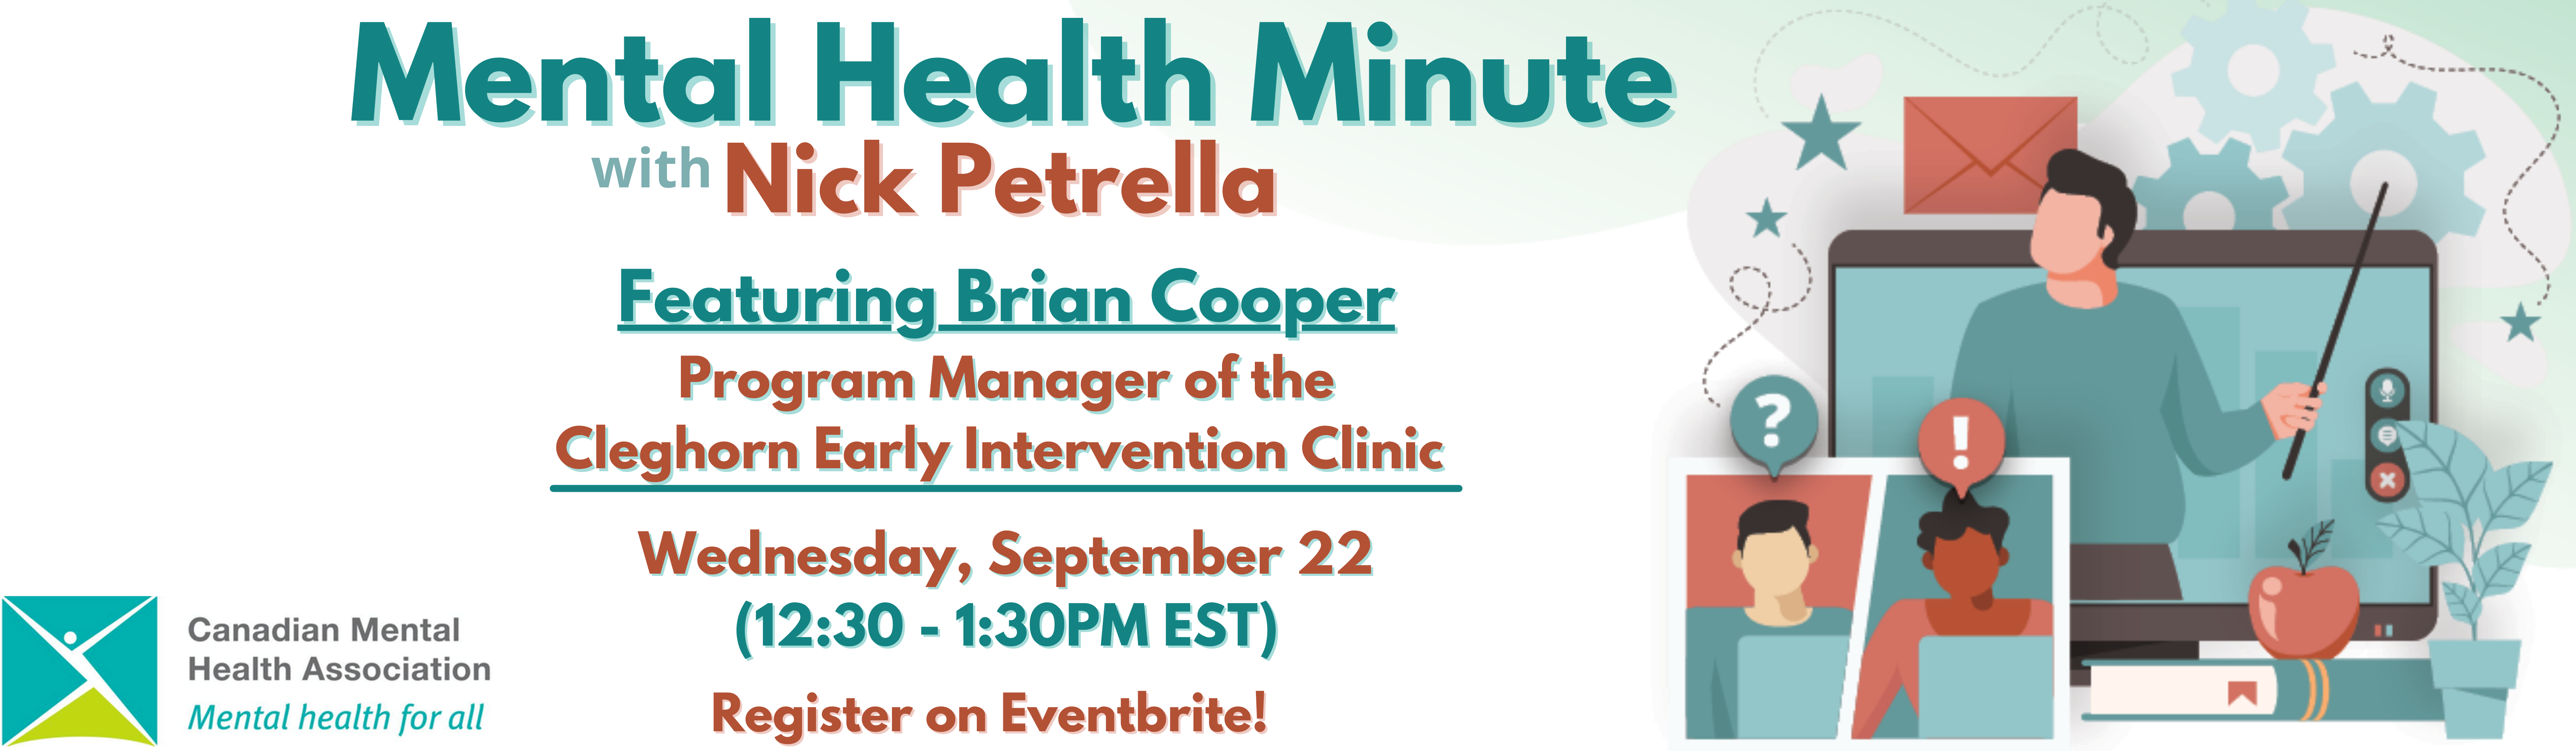 Mental Health Minute with Nick Petrella – featuring Brian Cooper from the Cleghorn Early Intervention Clinic